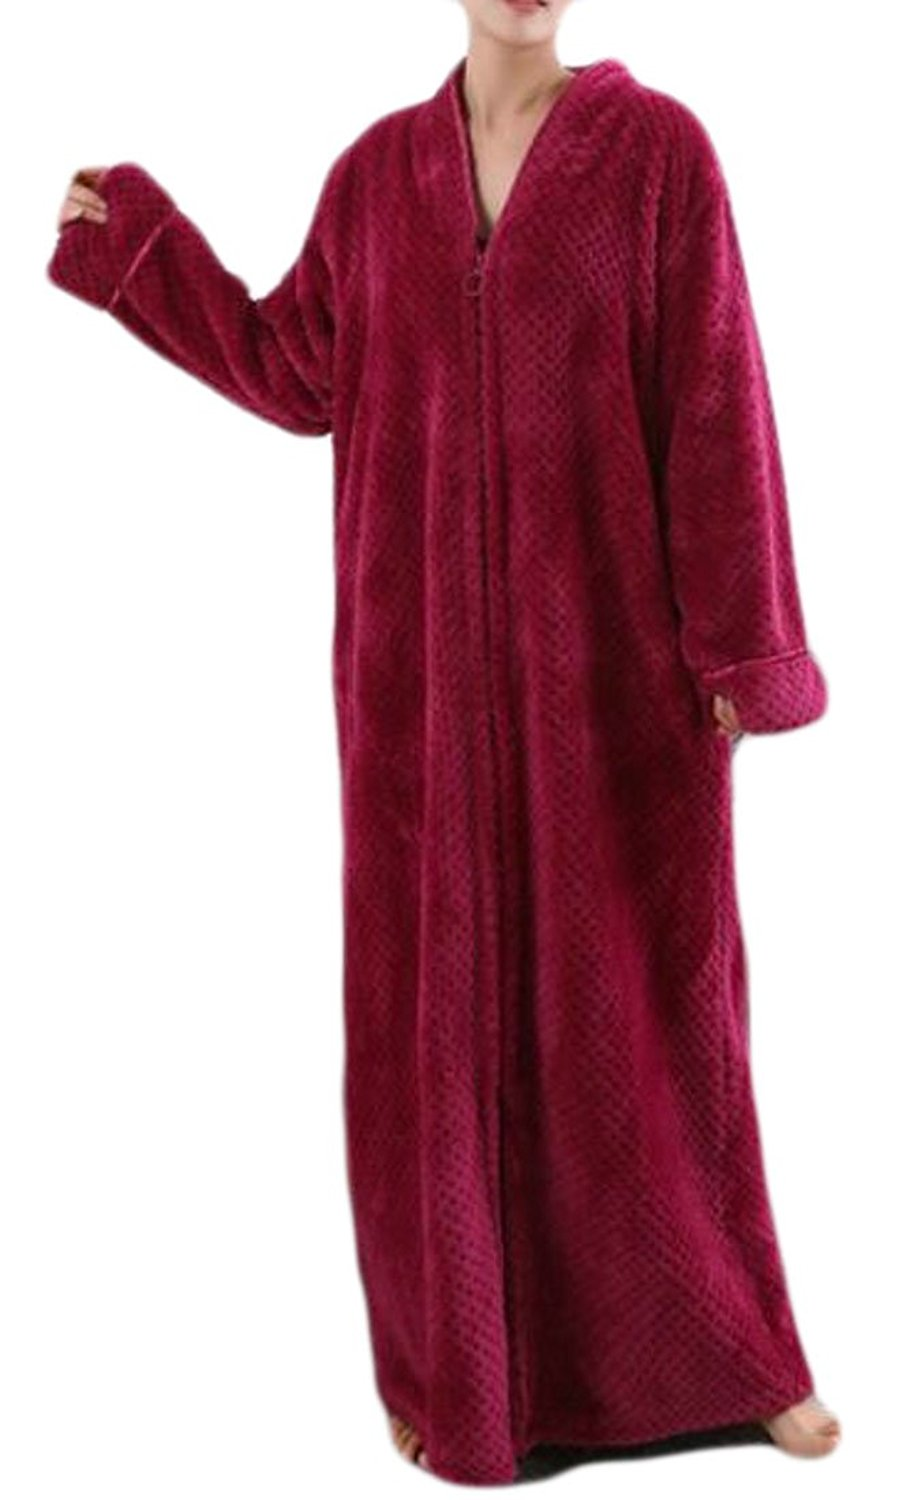 20a368a8b5 Get Quotations · Fulok Womens Flannel Zip-Front Solid Plush Homewear  Bathrobe Robes